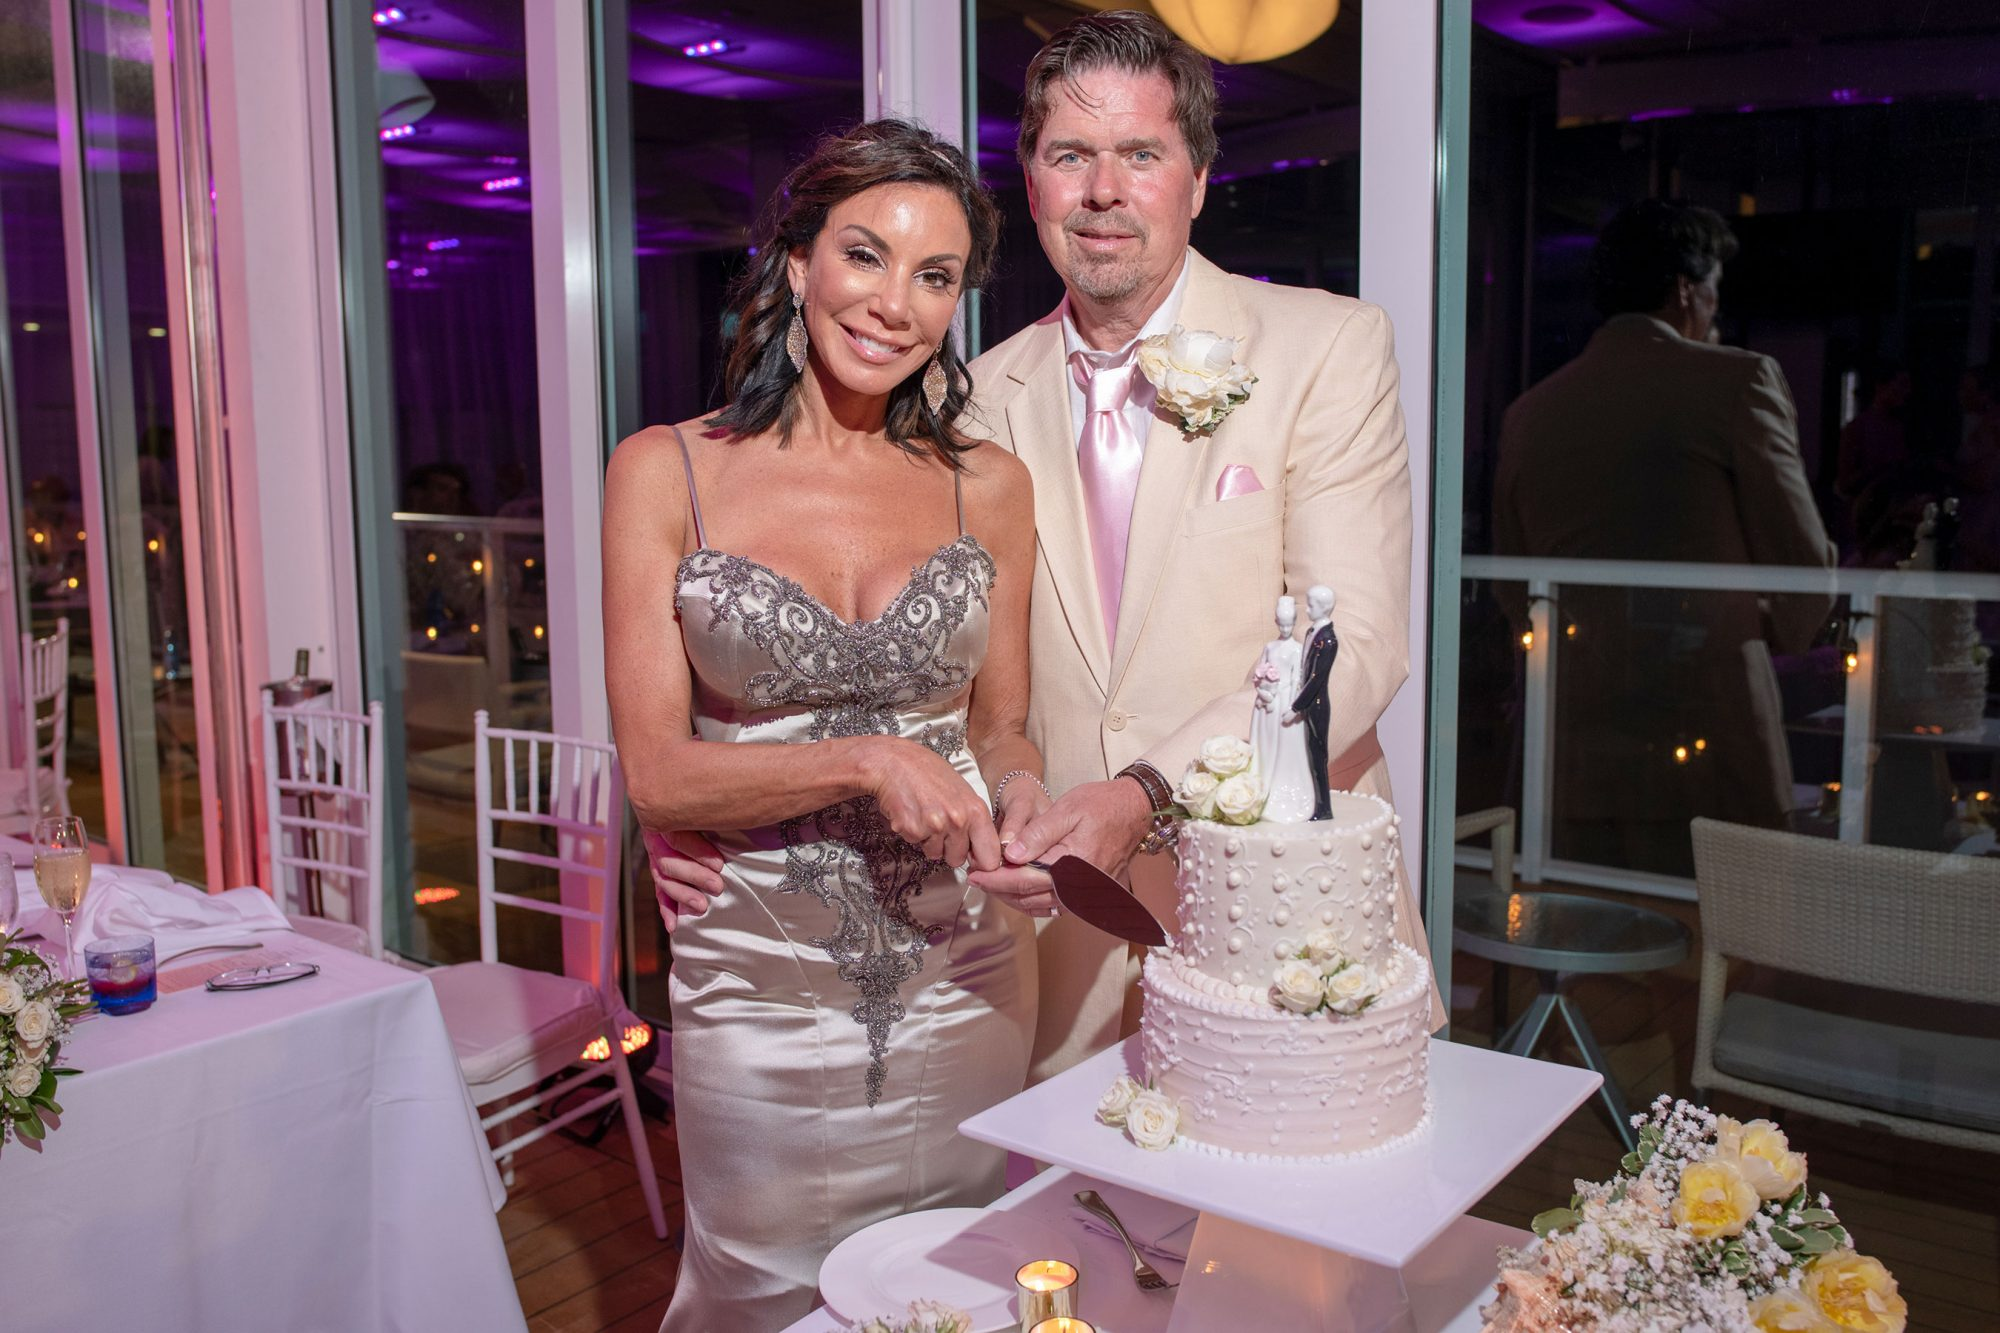 RHONJ's Danielle Staub Gets Married in Bimini